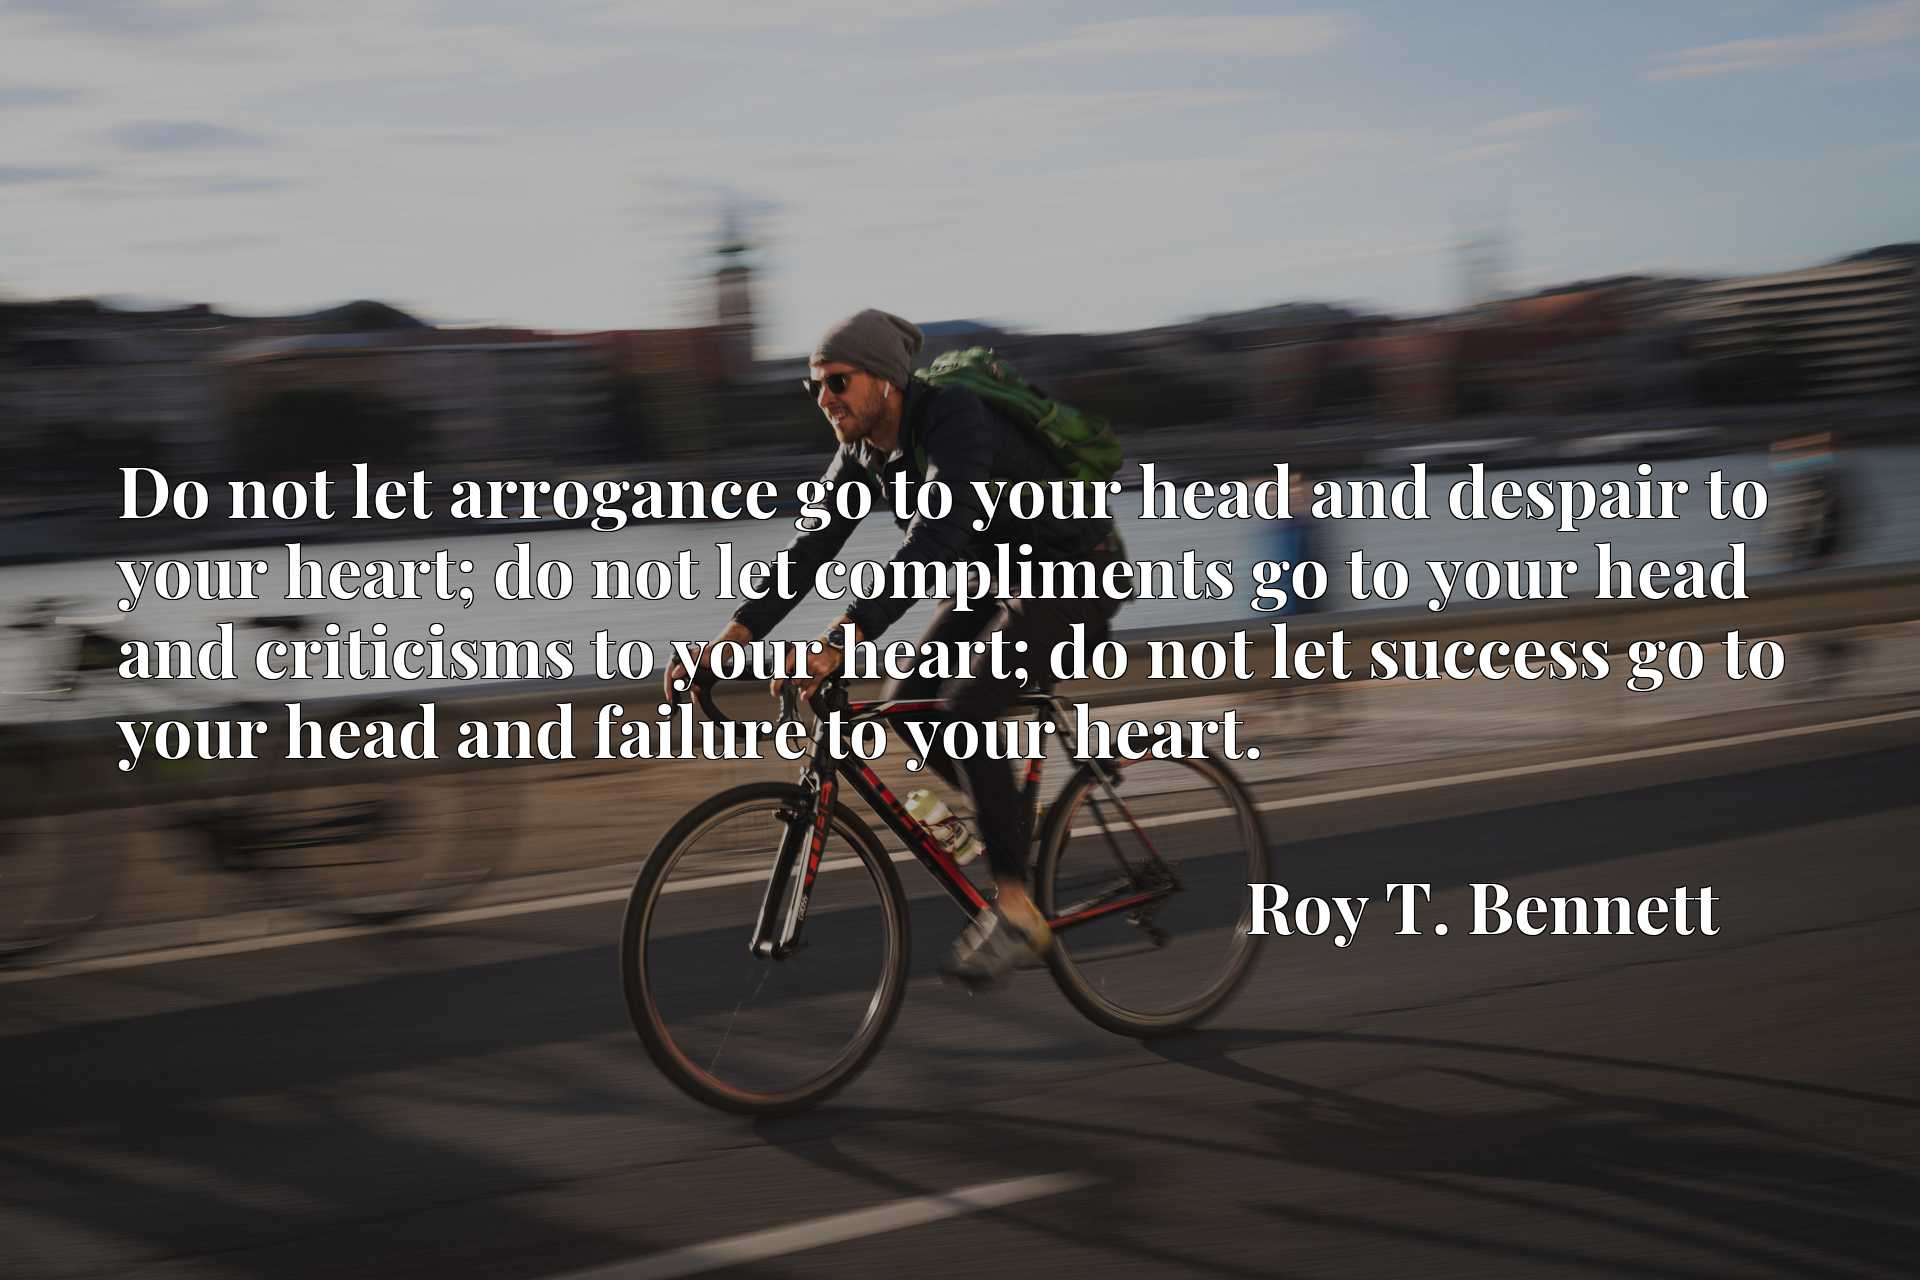 Do not let arrogance go to your head and despair to your heart; do not let compliments go to your head and criticisms to your heart; do not let success go to your head and failure to your heart.